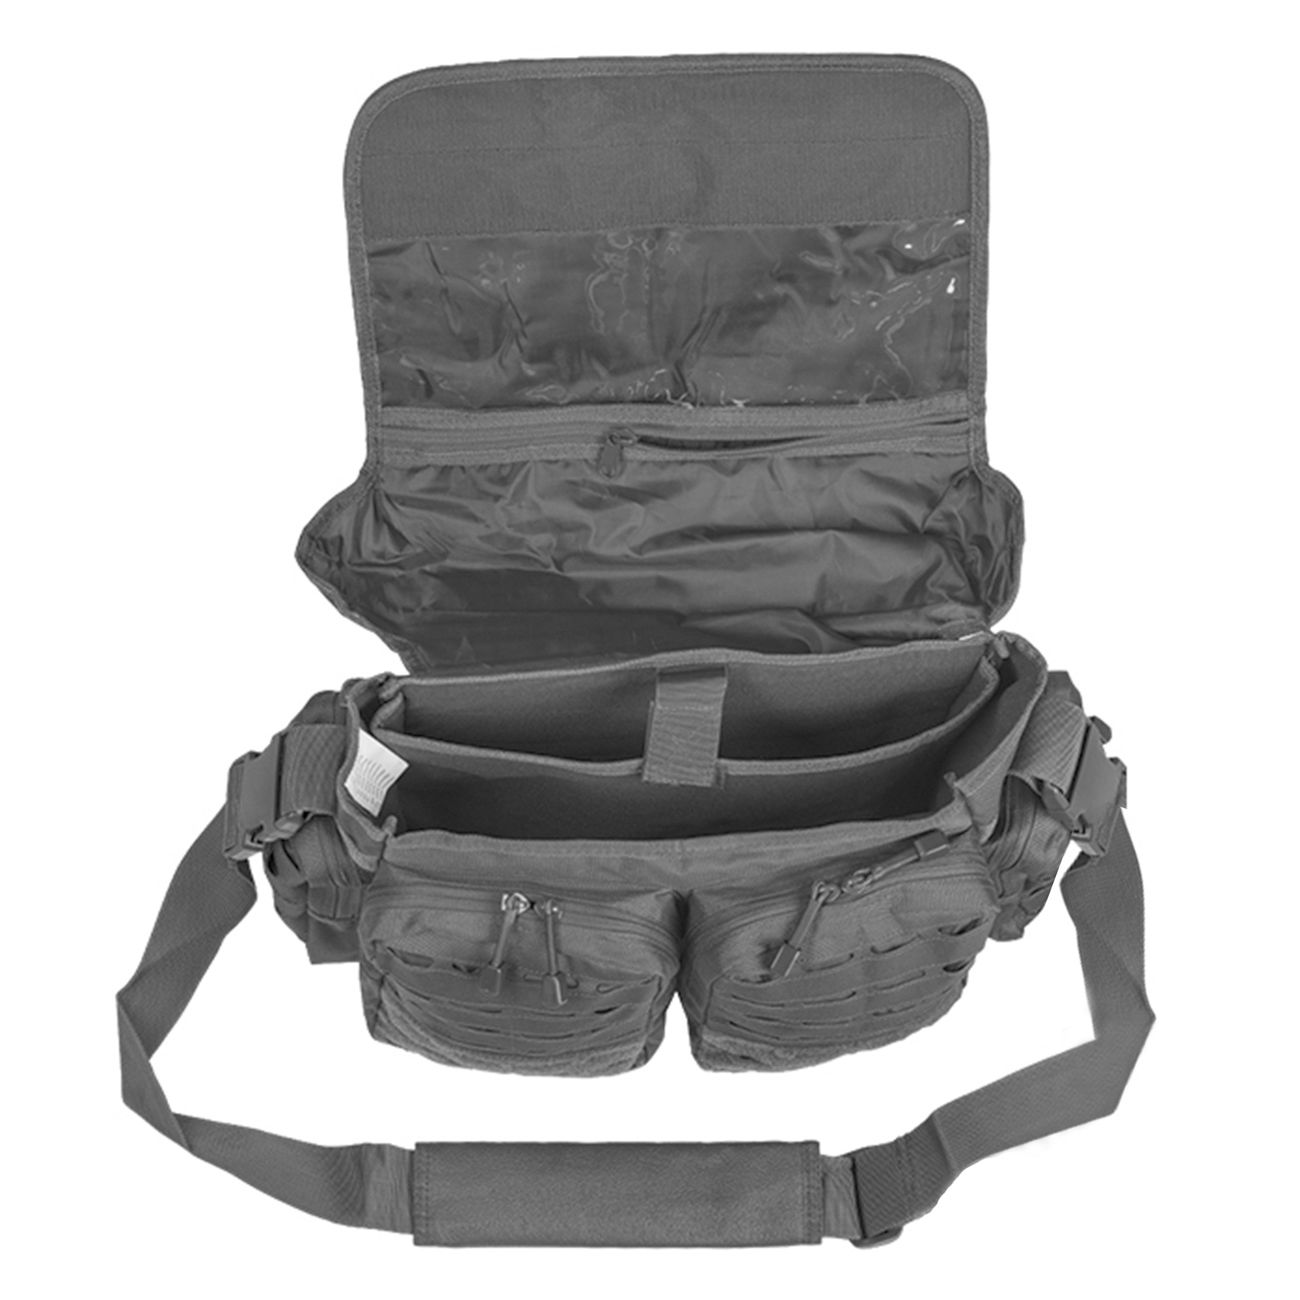 Mil-Tec Tactical Paracord Bag Large urban grey 1